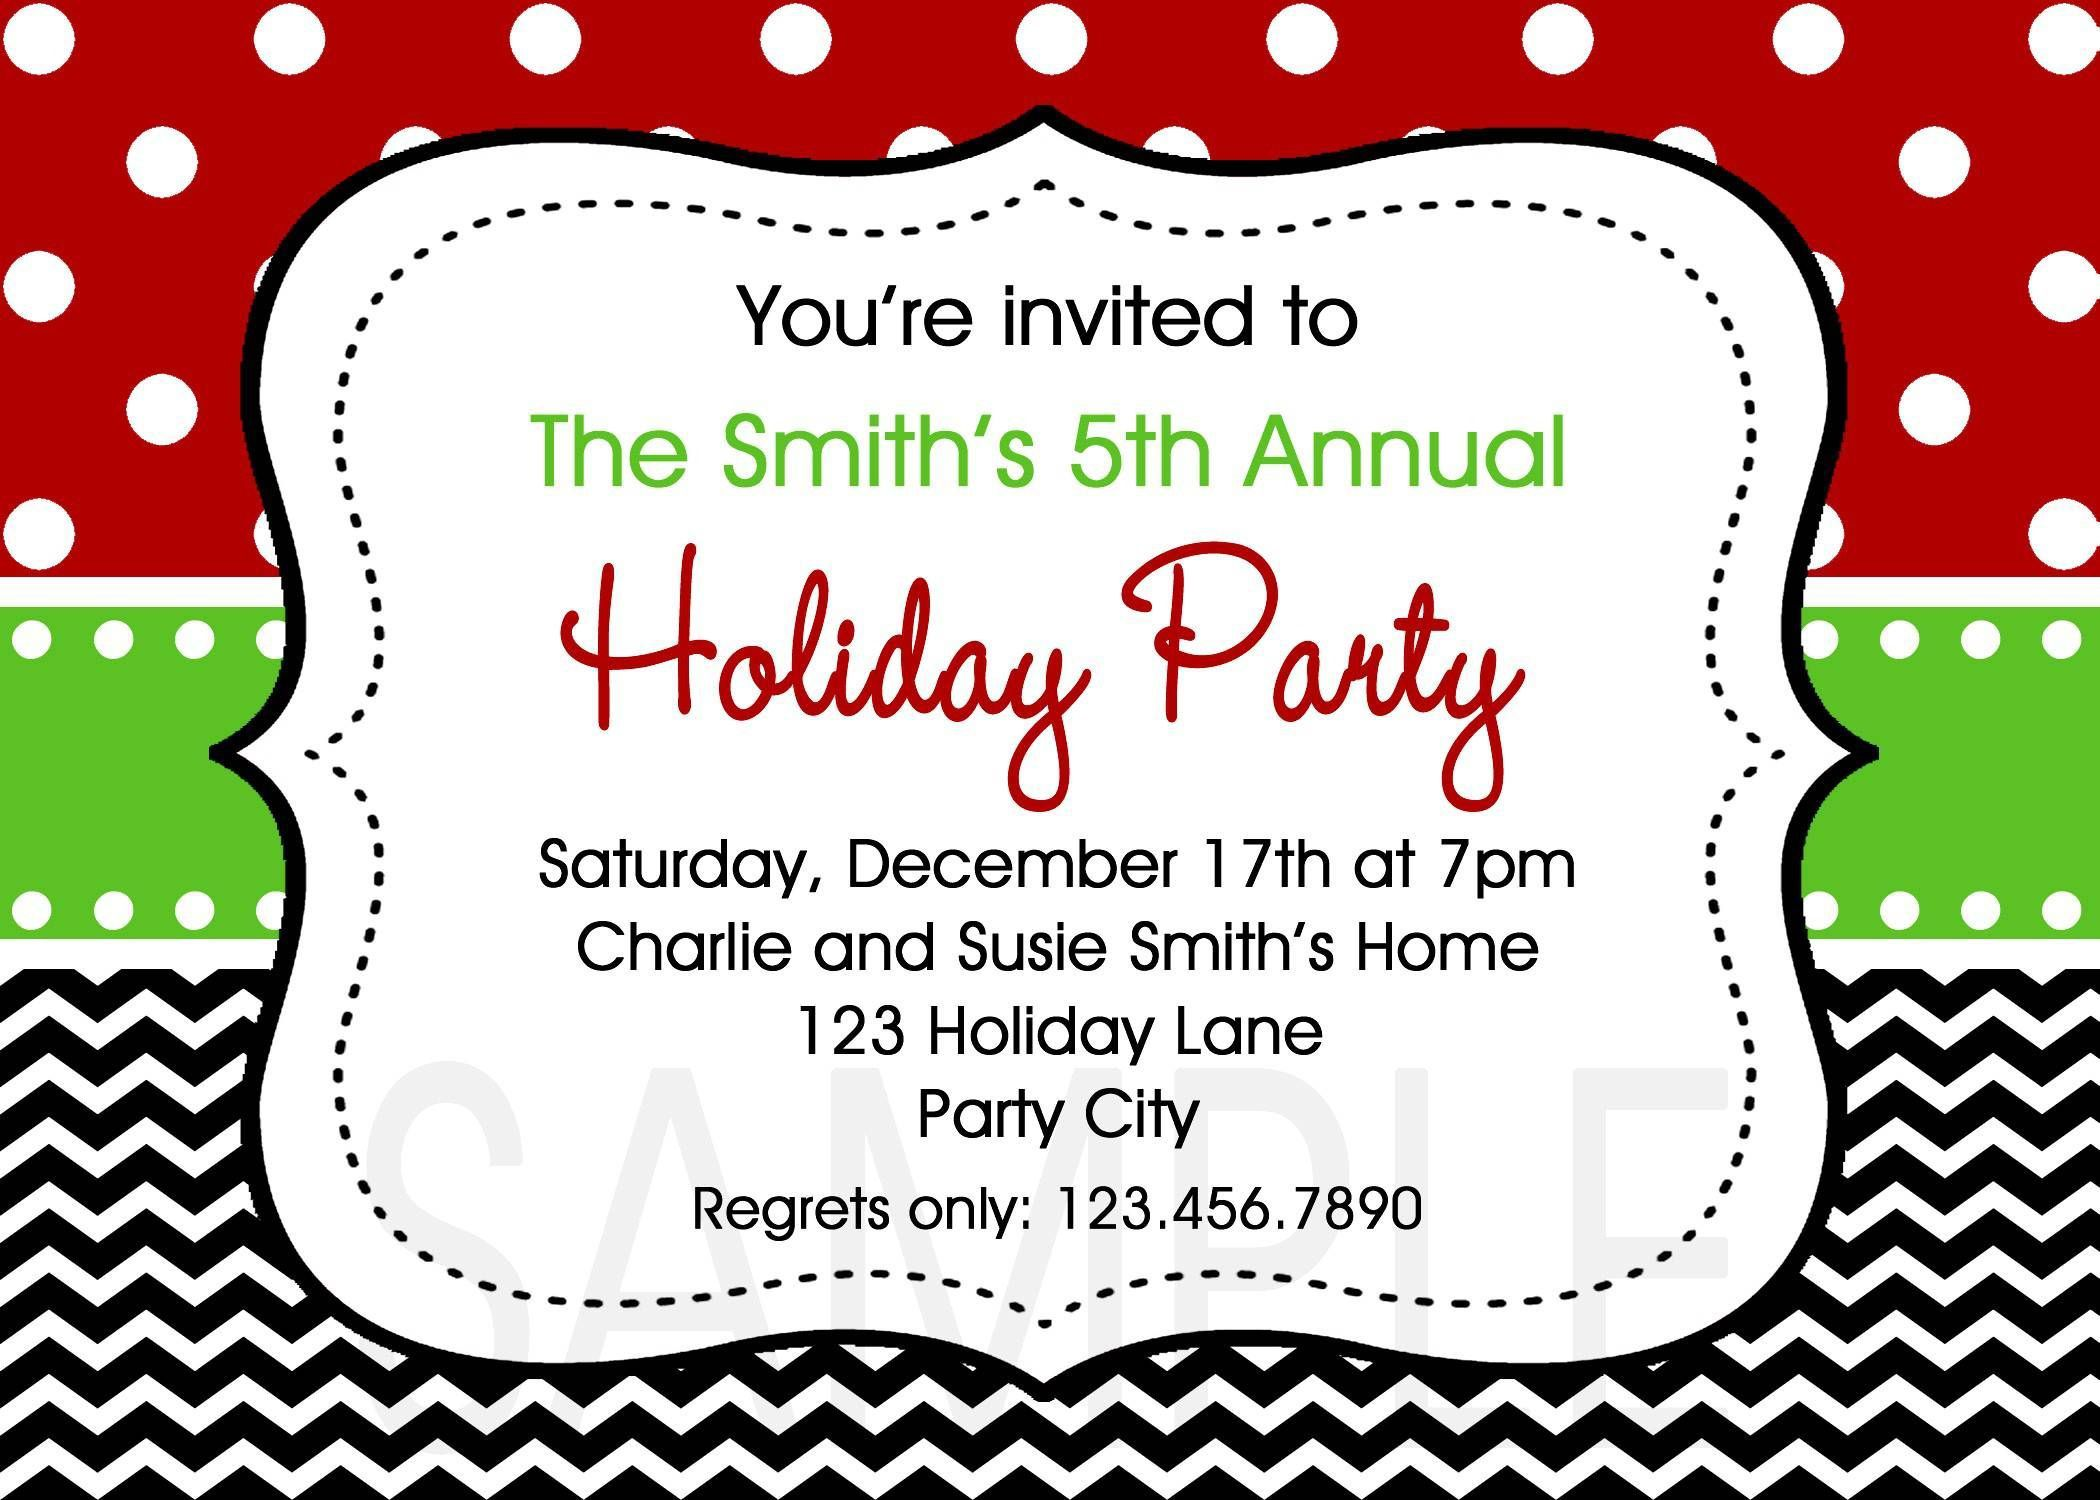 003 Formidable Christma Party Invite Template Word Photo  Holiday Free Invitation Wording ExampleFull